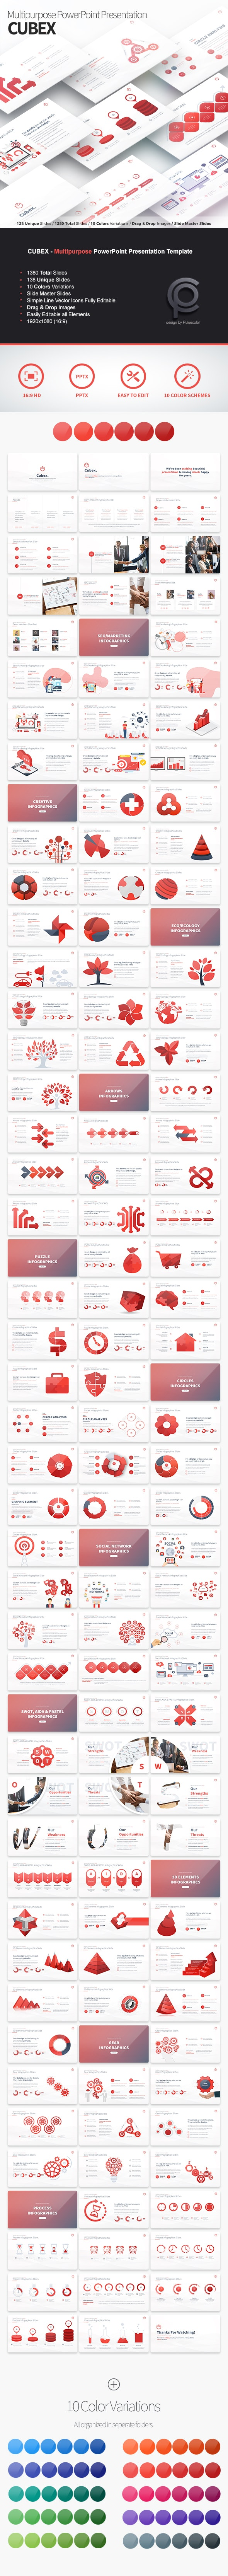 Cubex - Multipurpose PowerPoint Presentation - Business PowerPoint Templates